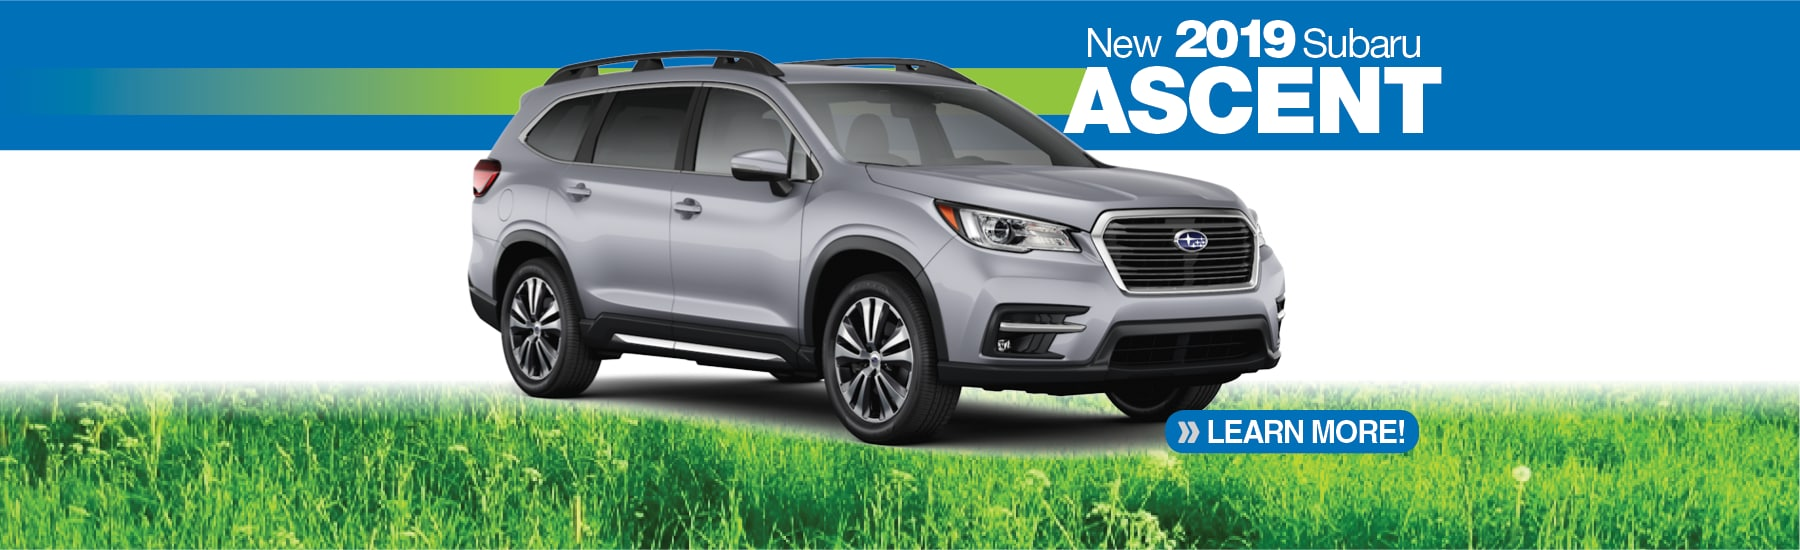 premier subaru watertown connecticut dealer near me new 2017 used cars near torrington. Black Bedroom Furniture Sets. Home Design Ideas